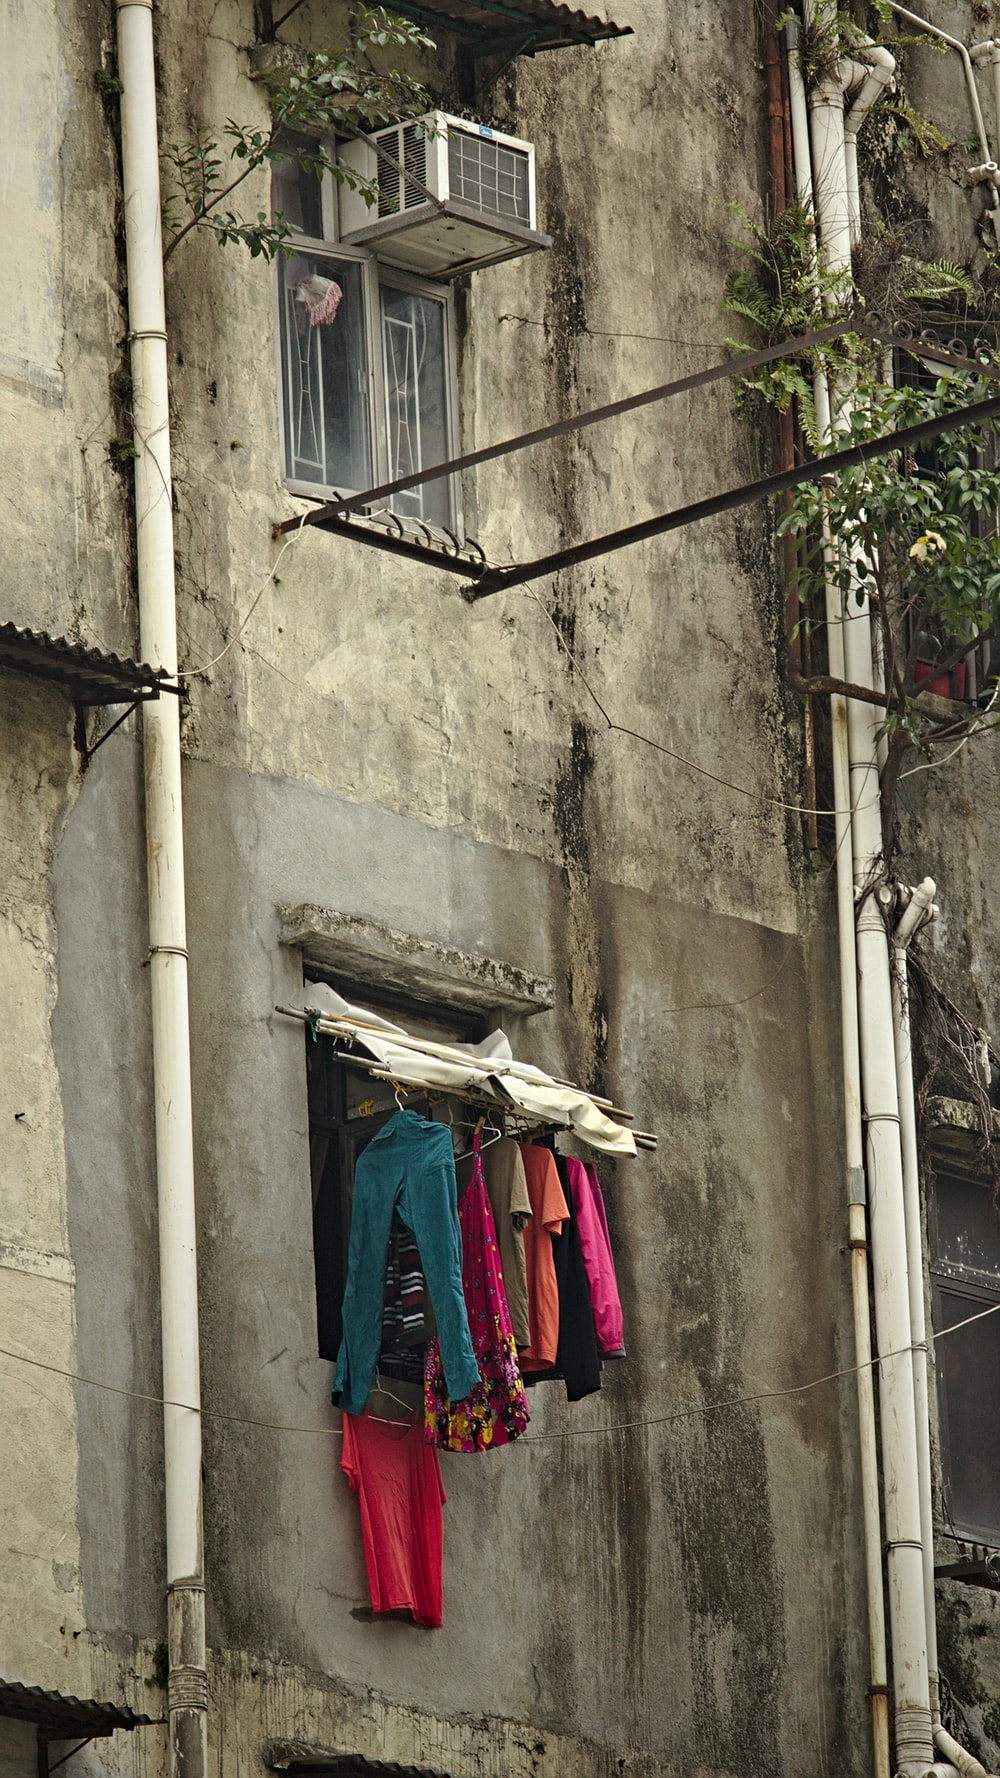 clothes hanging outside a building window